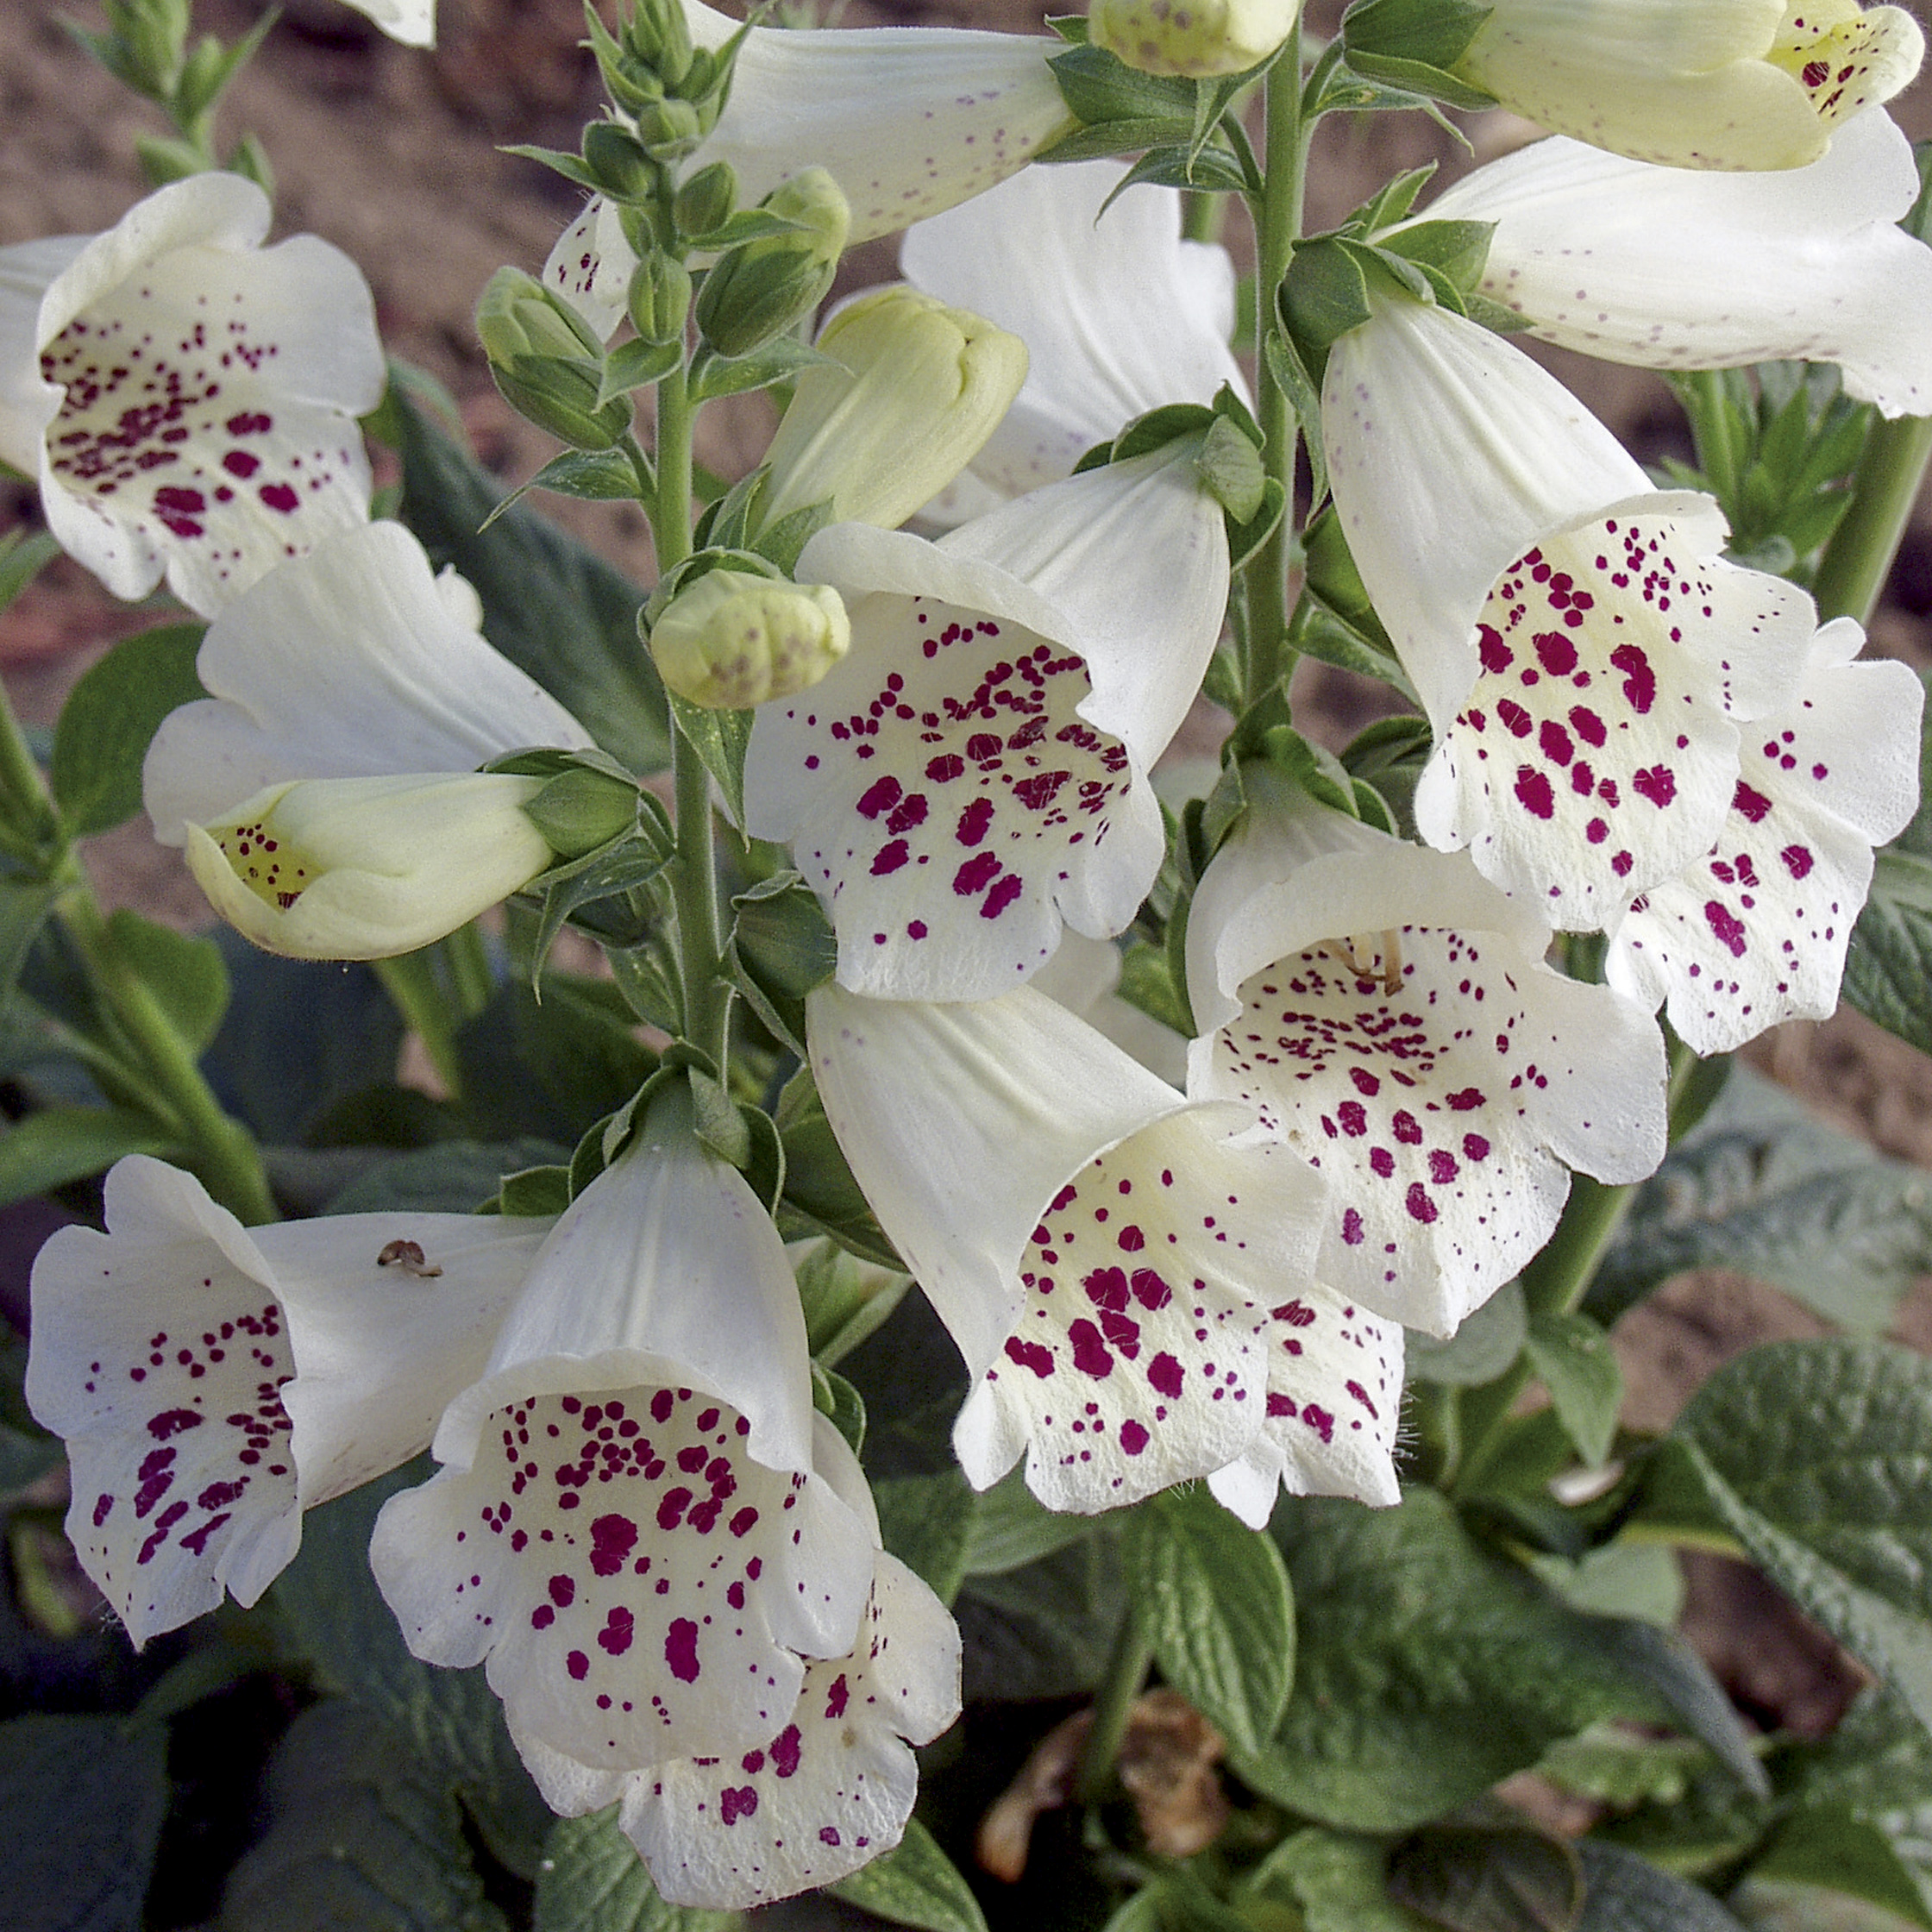 HR_Seed_Digitalis_Camelot™_Camelot™_White_70019383_1.jpg